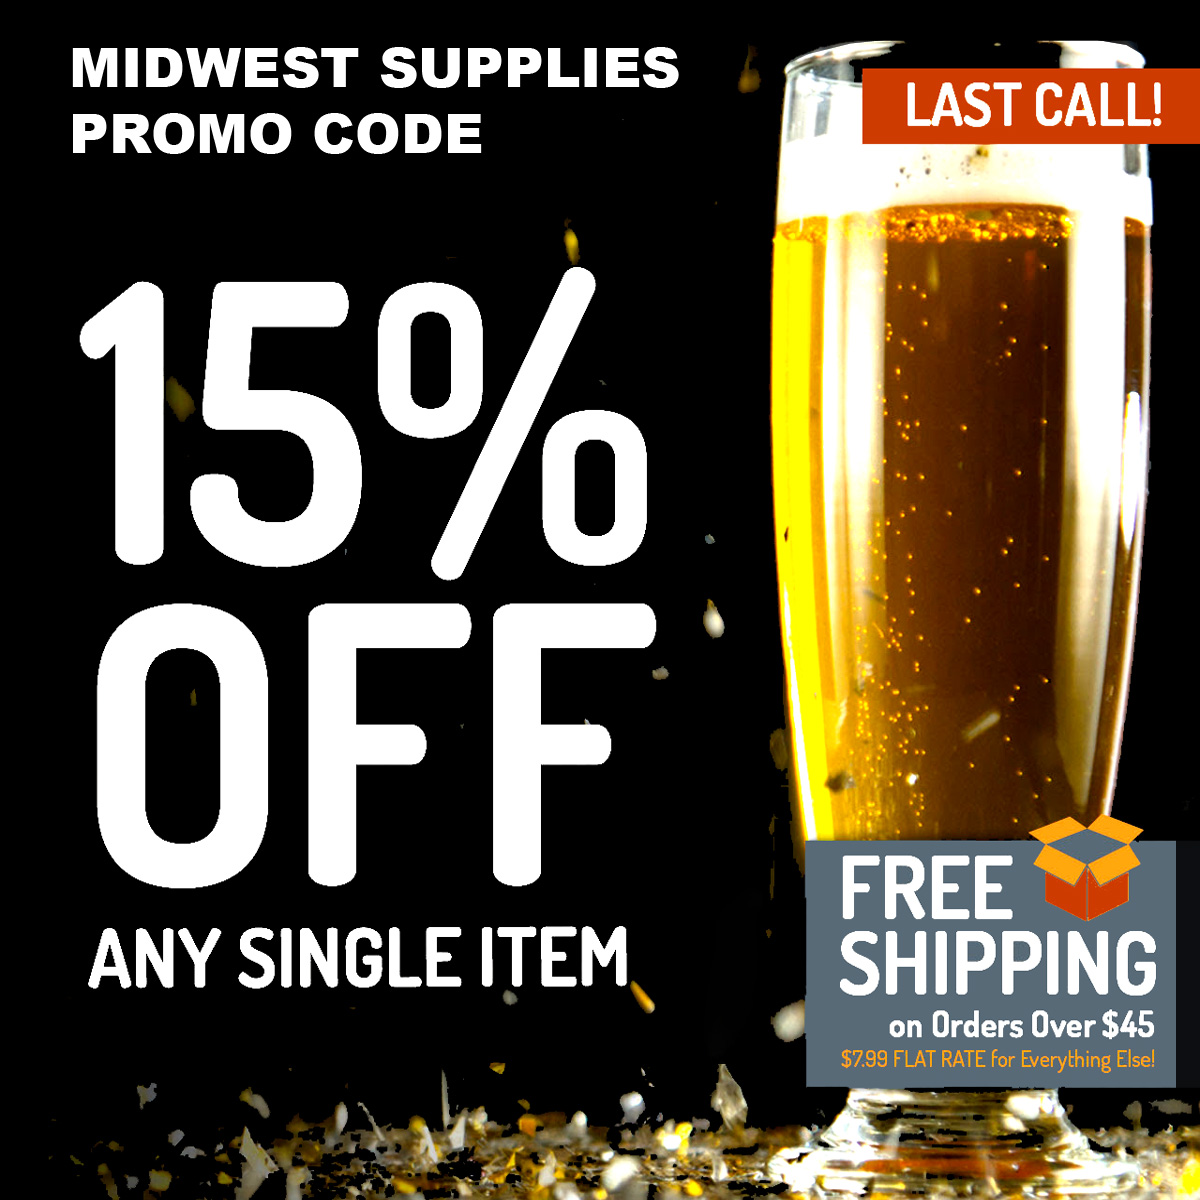 Home Wine Making Coupon Codes for Save 15% On A Single Item with this MidwestSupplies.com Promo Code Coupon Code